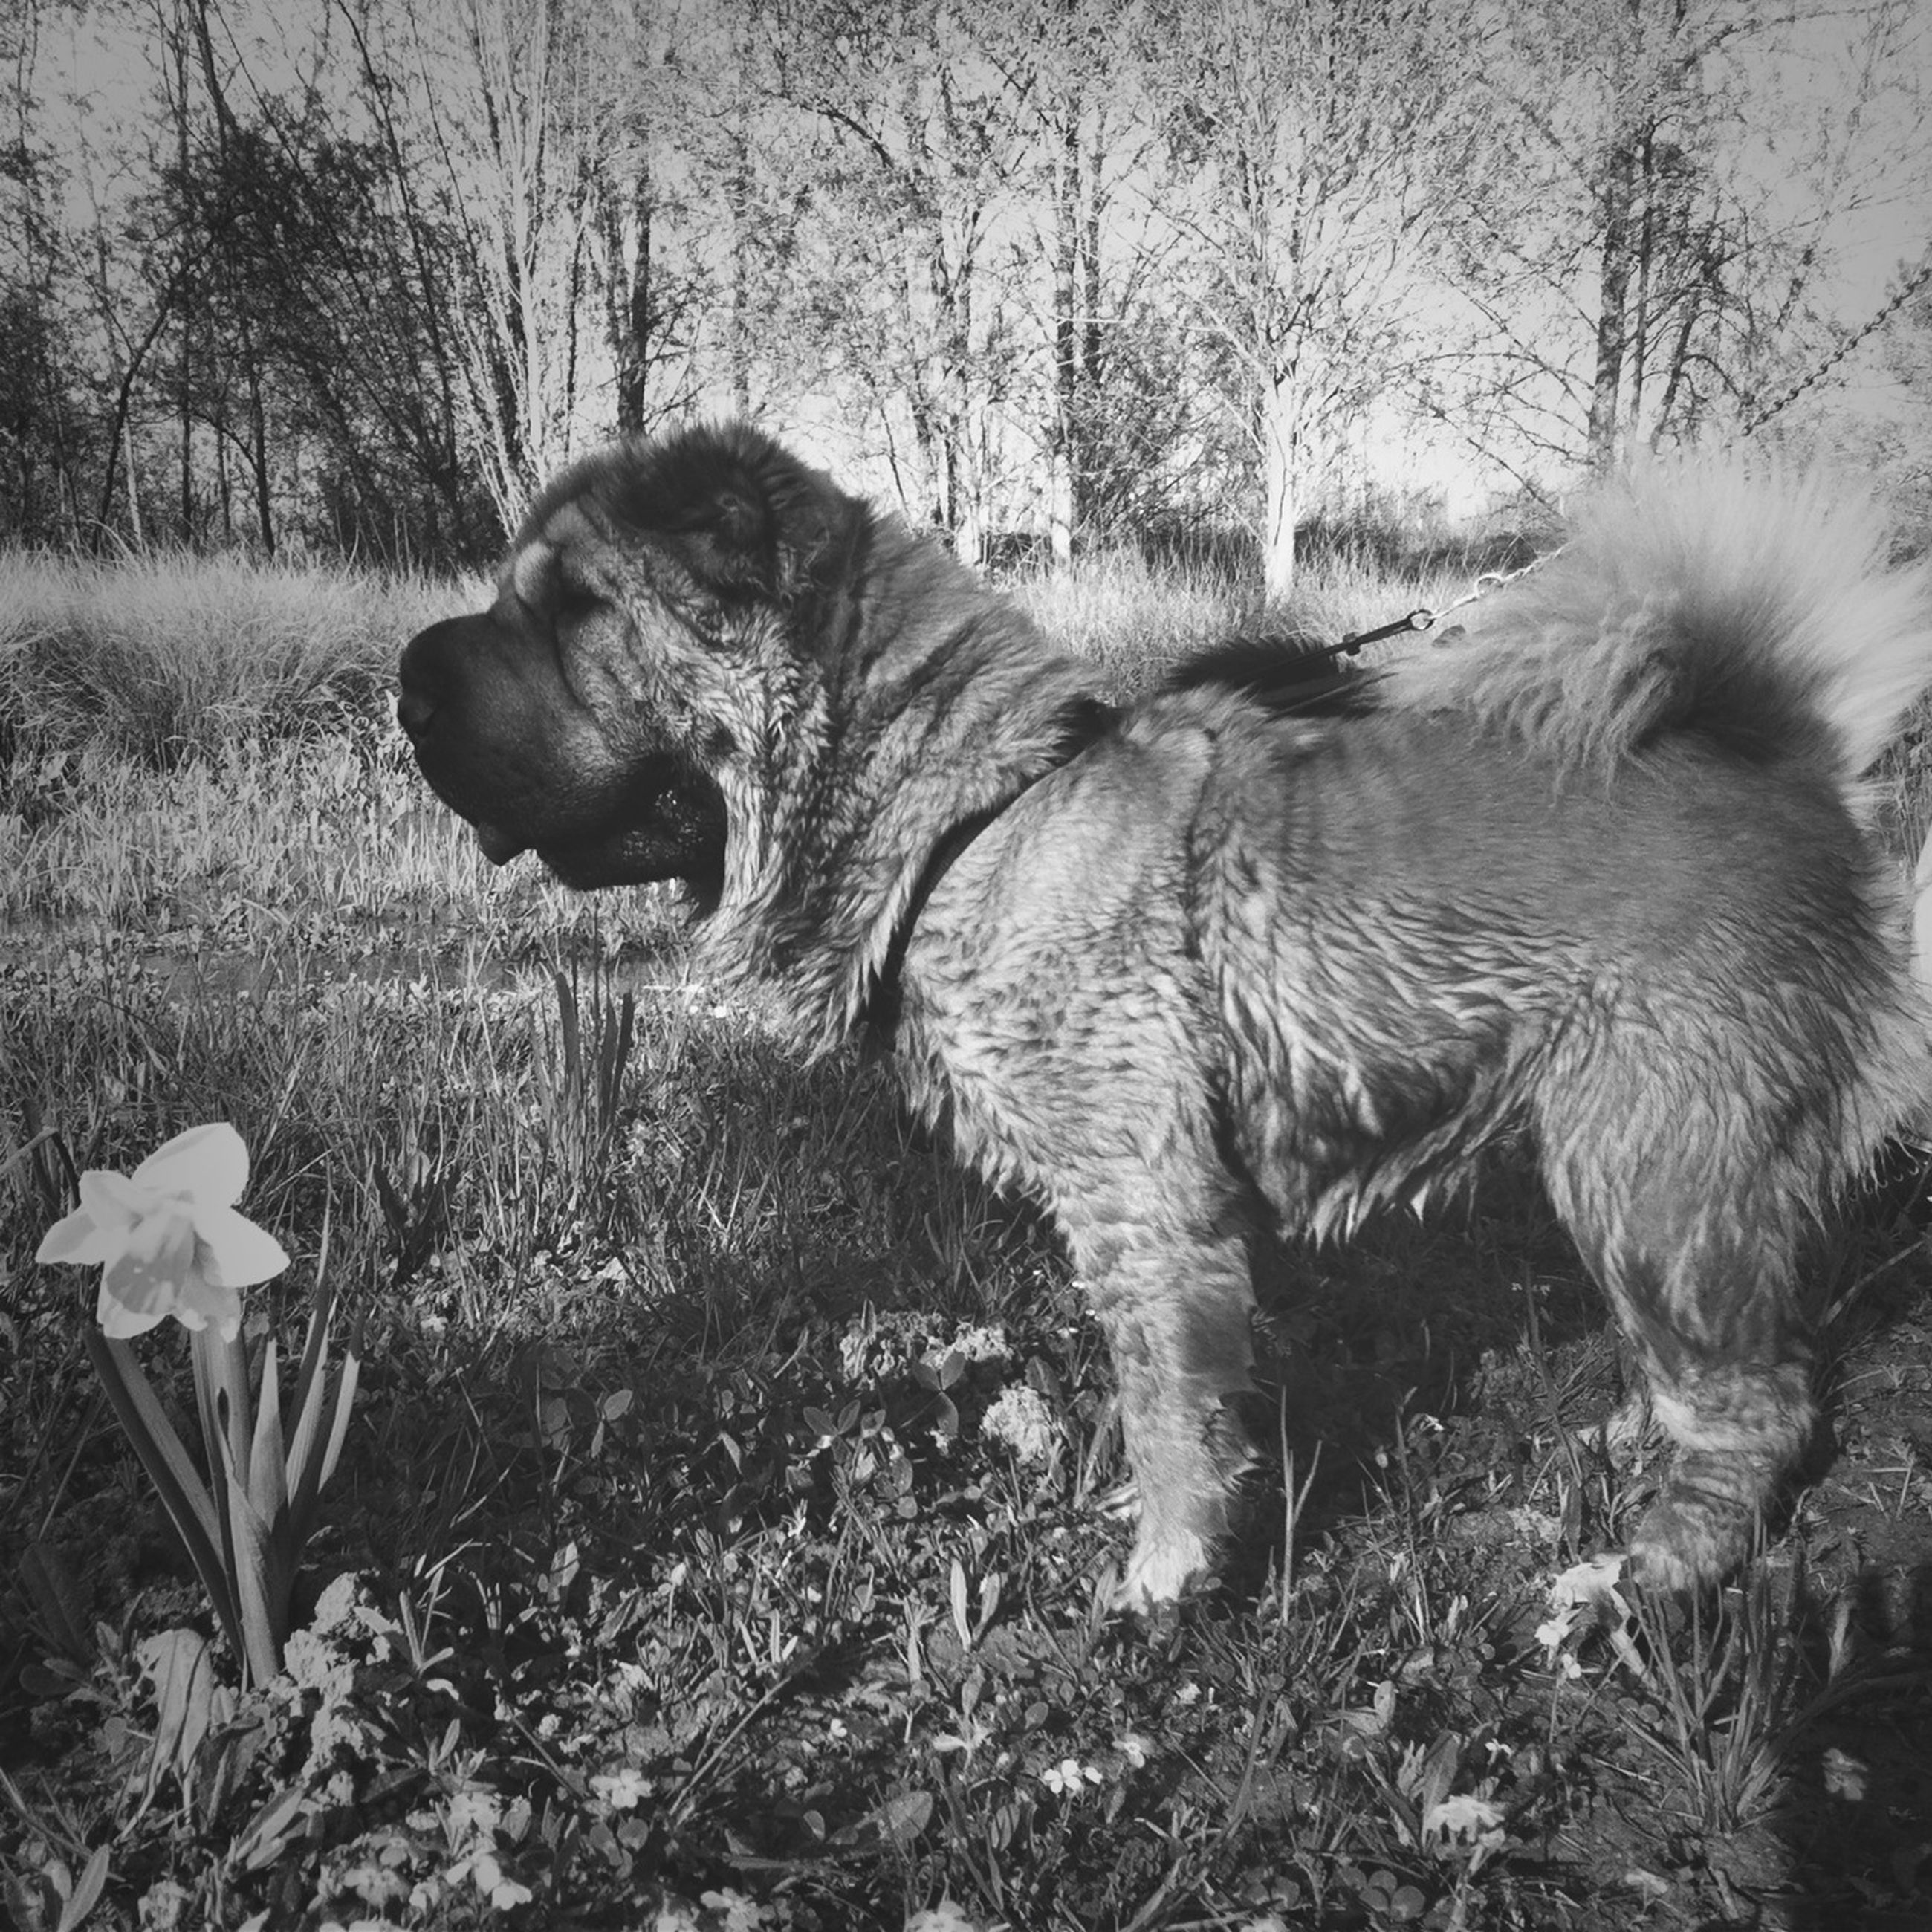 animal themes, one animal, mammal, grass, field, domestic animals, nature, tree, wildlife, animals in the wild, outdoors, dog, day, no people, relaxation, plant, forest, side view, growth, standing